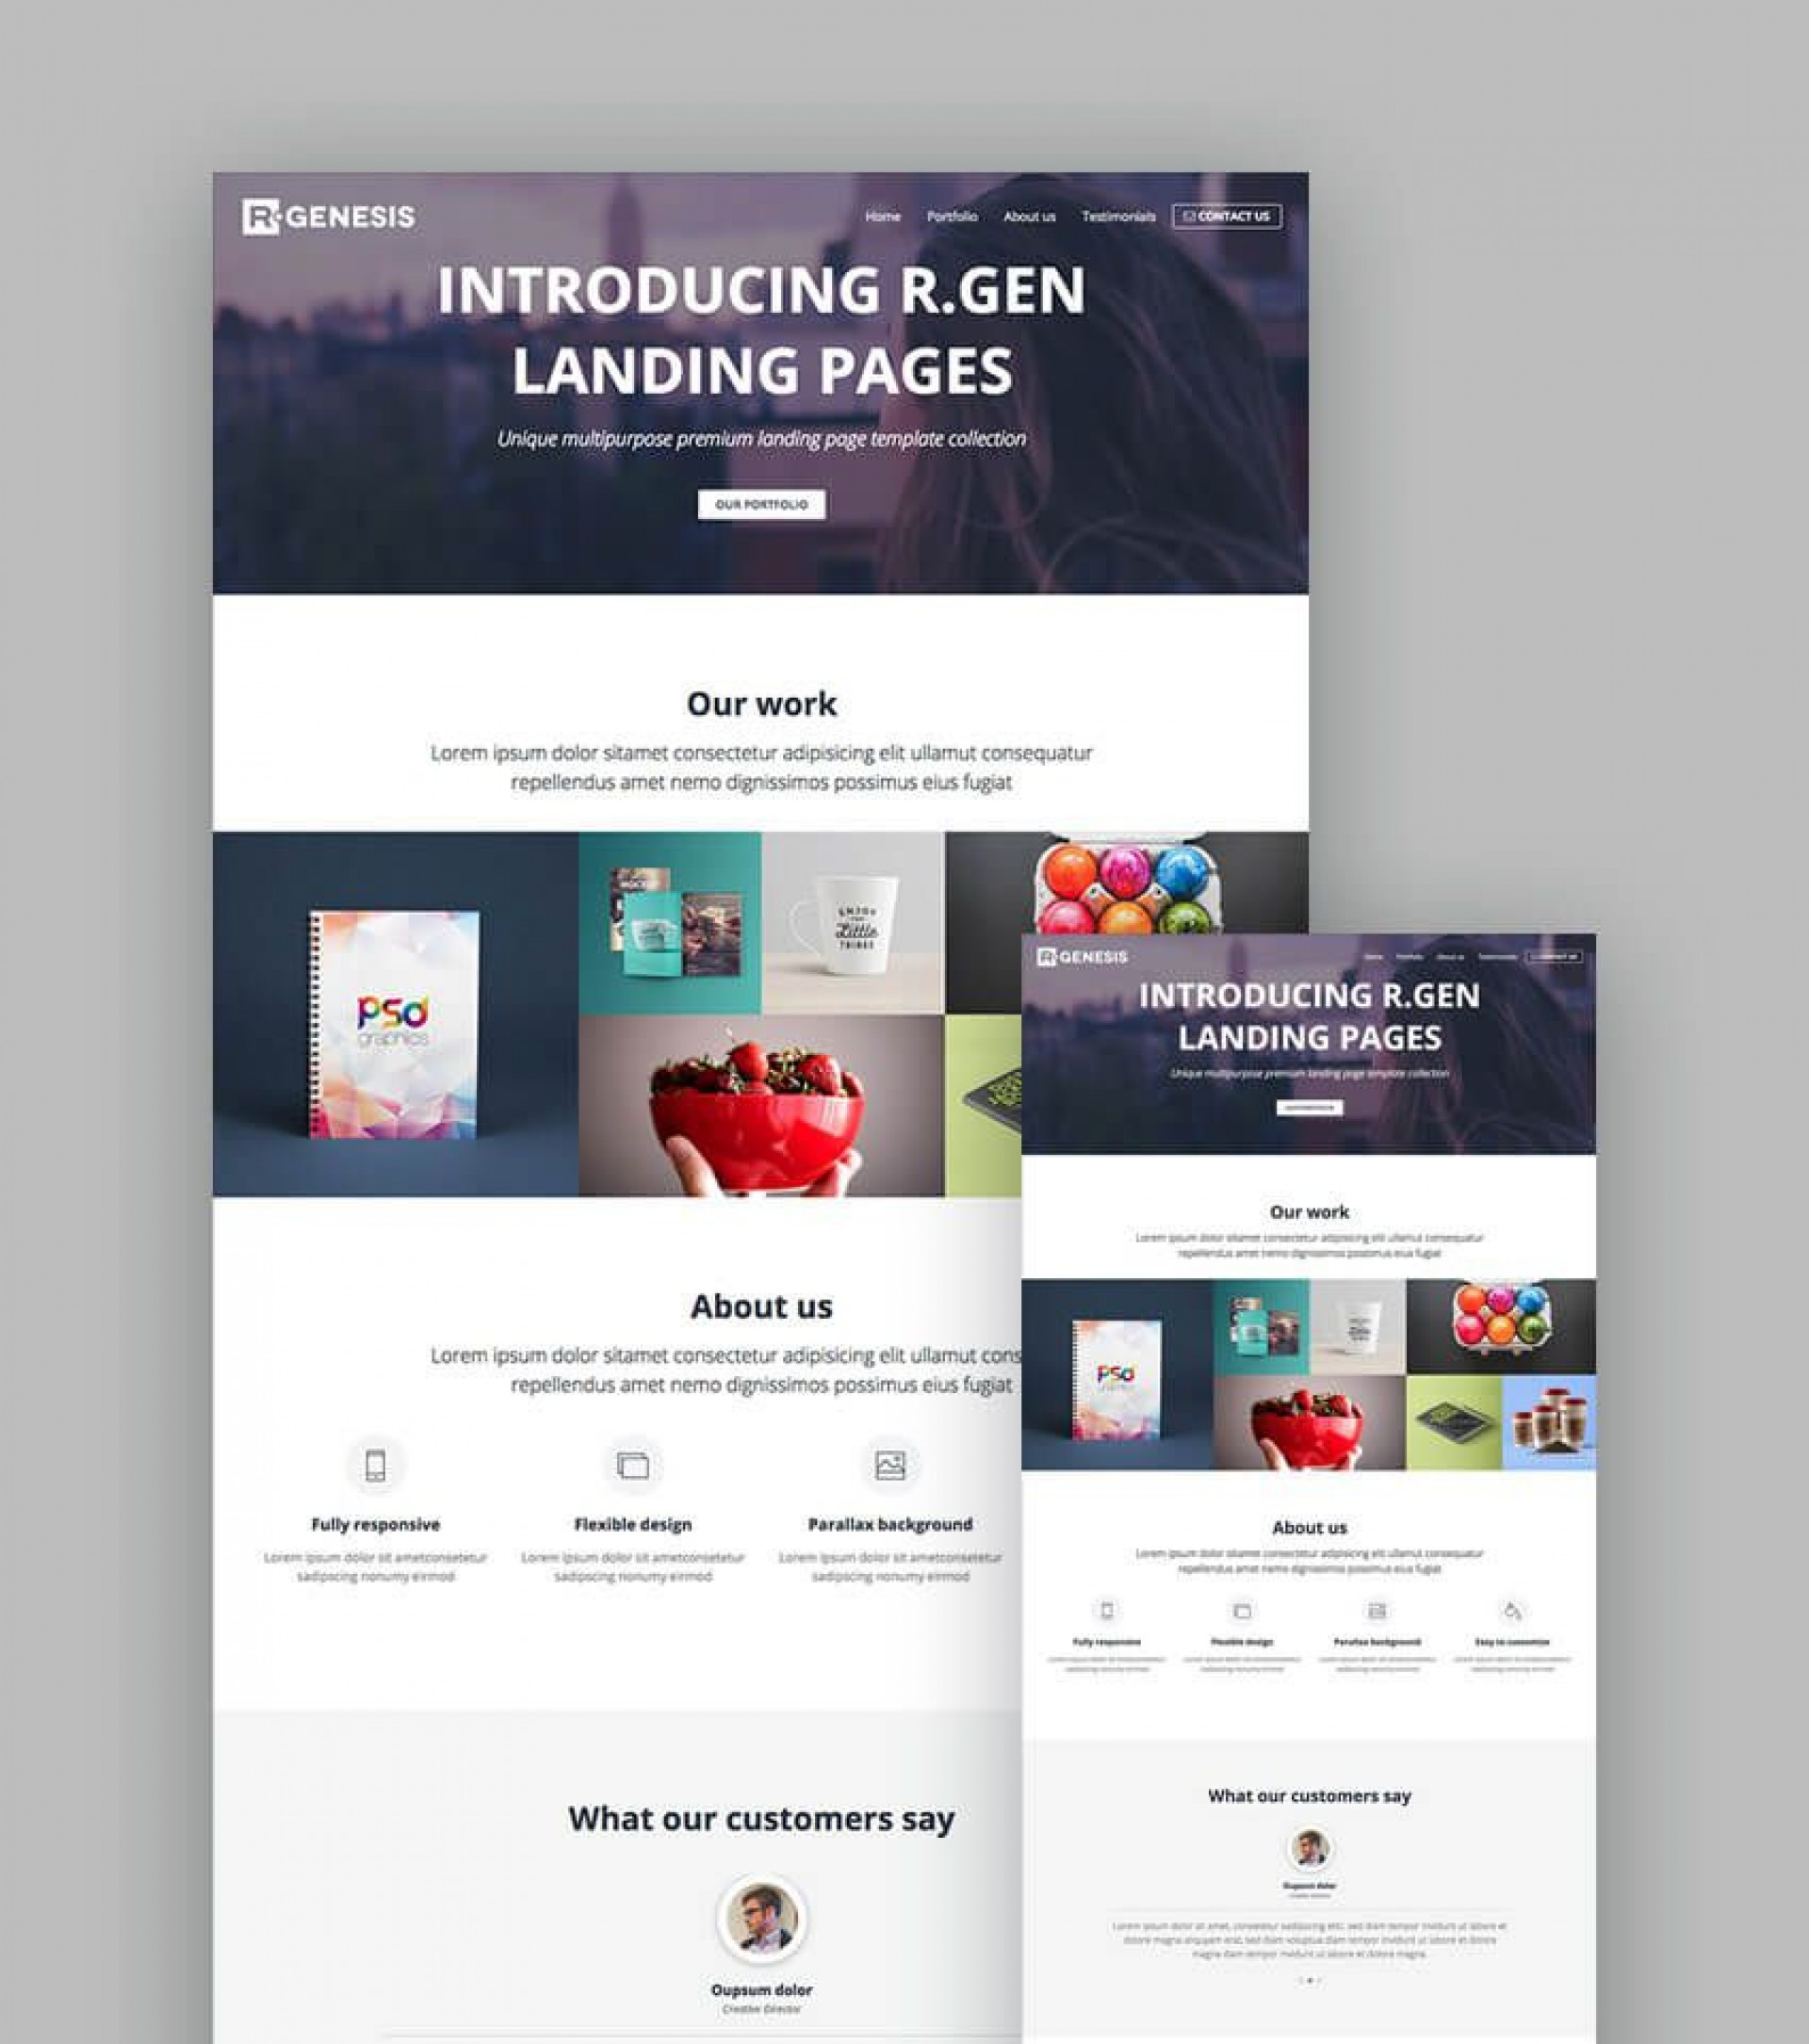 007 Wonderful Responsive Landing Page Template High Definition  Templates Html5 Free Download Wordpres Html1920